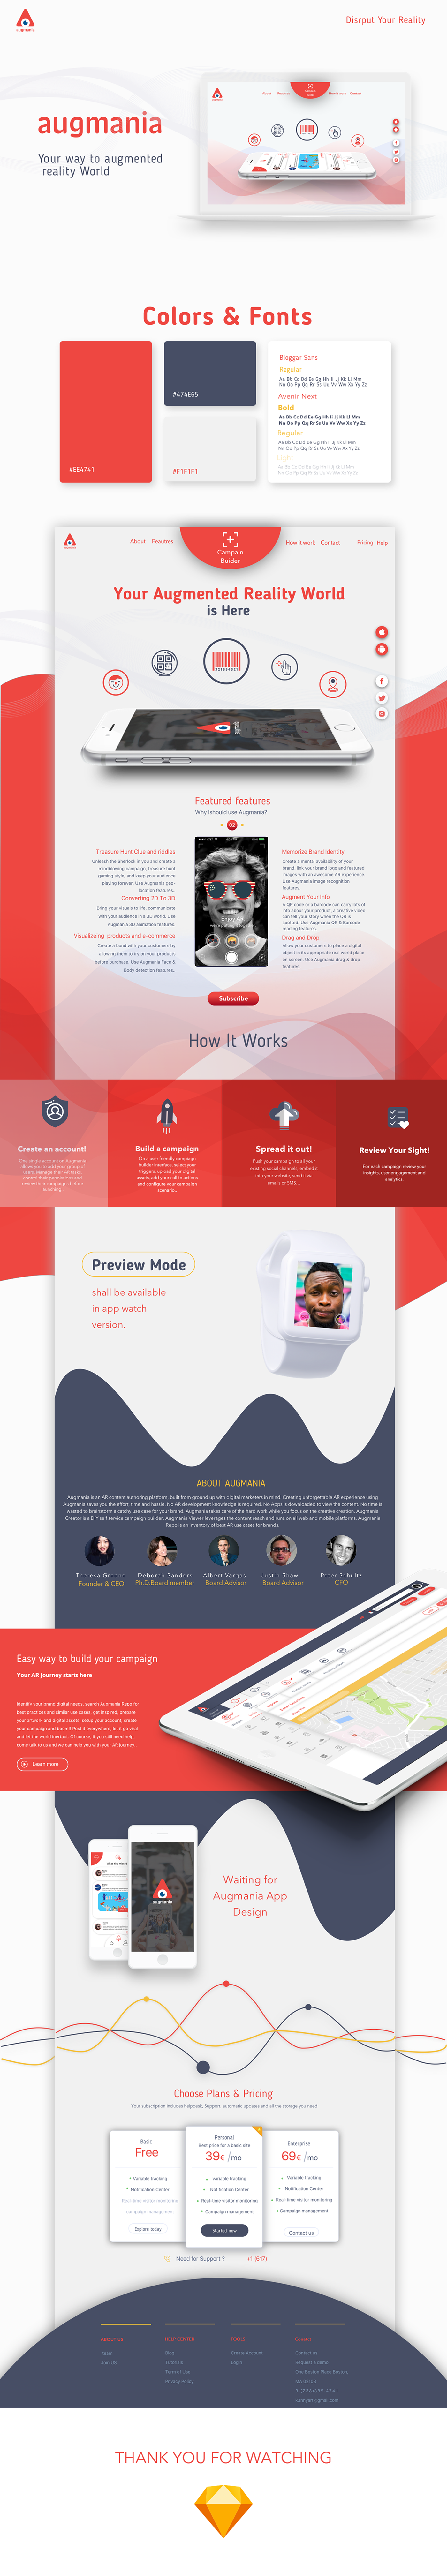 ios augmented reality red Web android Webdesign UI uxdesign